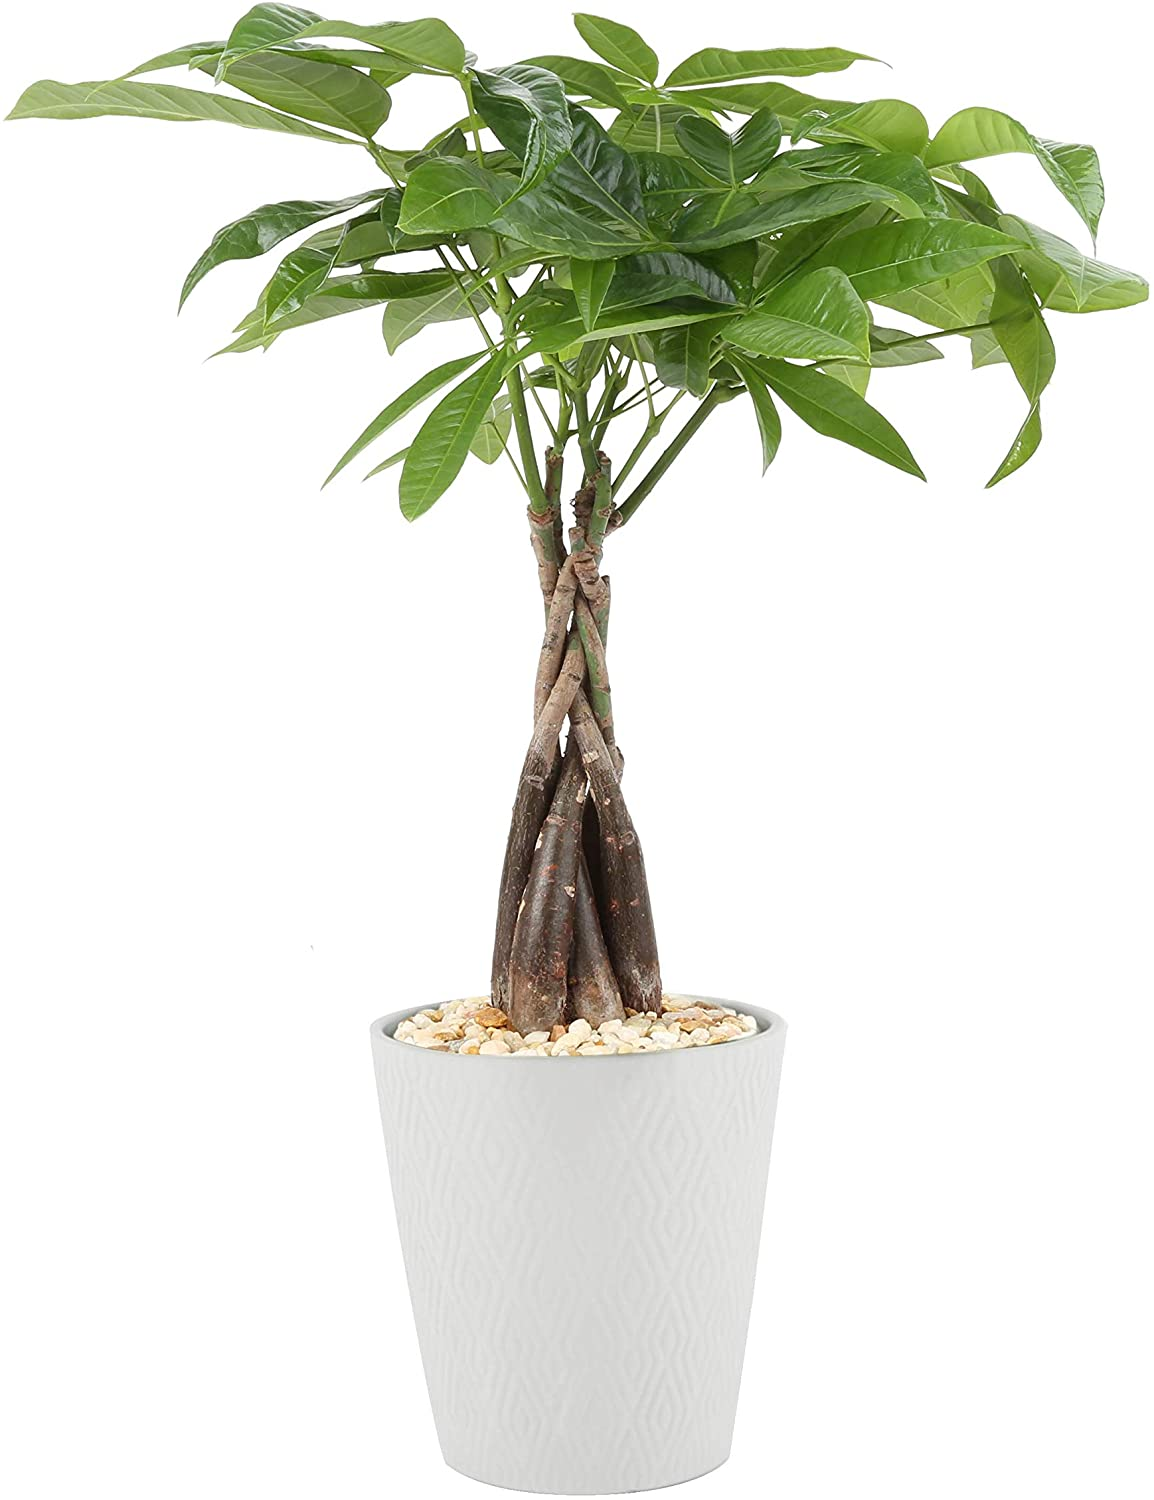 Money Tree Plant Care How To Grow Maintain Money Trees Apartment Therapy